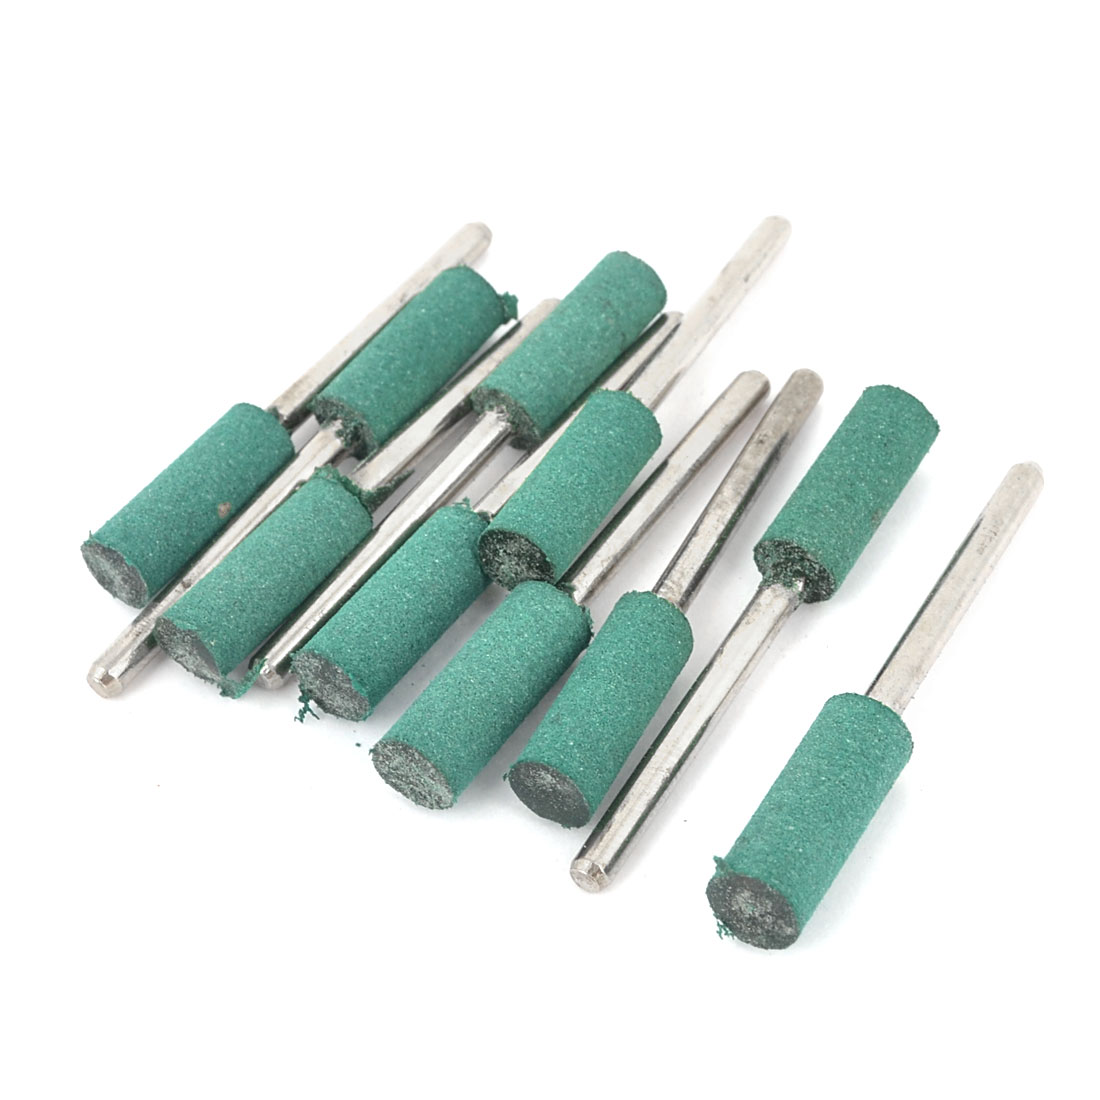 10 Pcs Alloy Shank Mounted Grinding Point Sharpening Tool 3mm x 6mm x 17mm